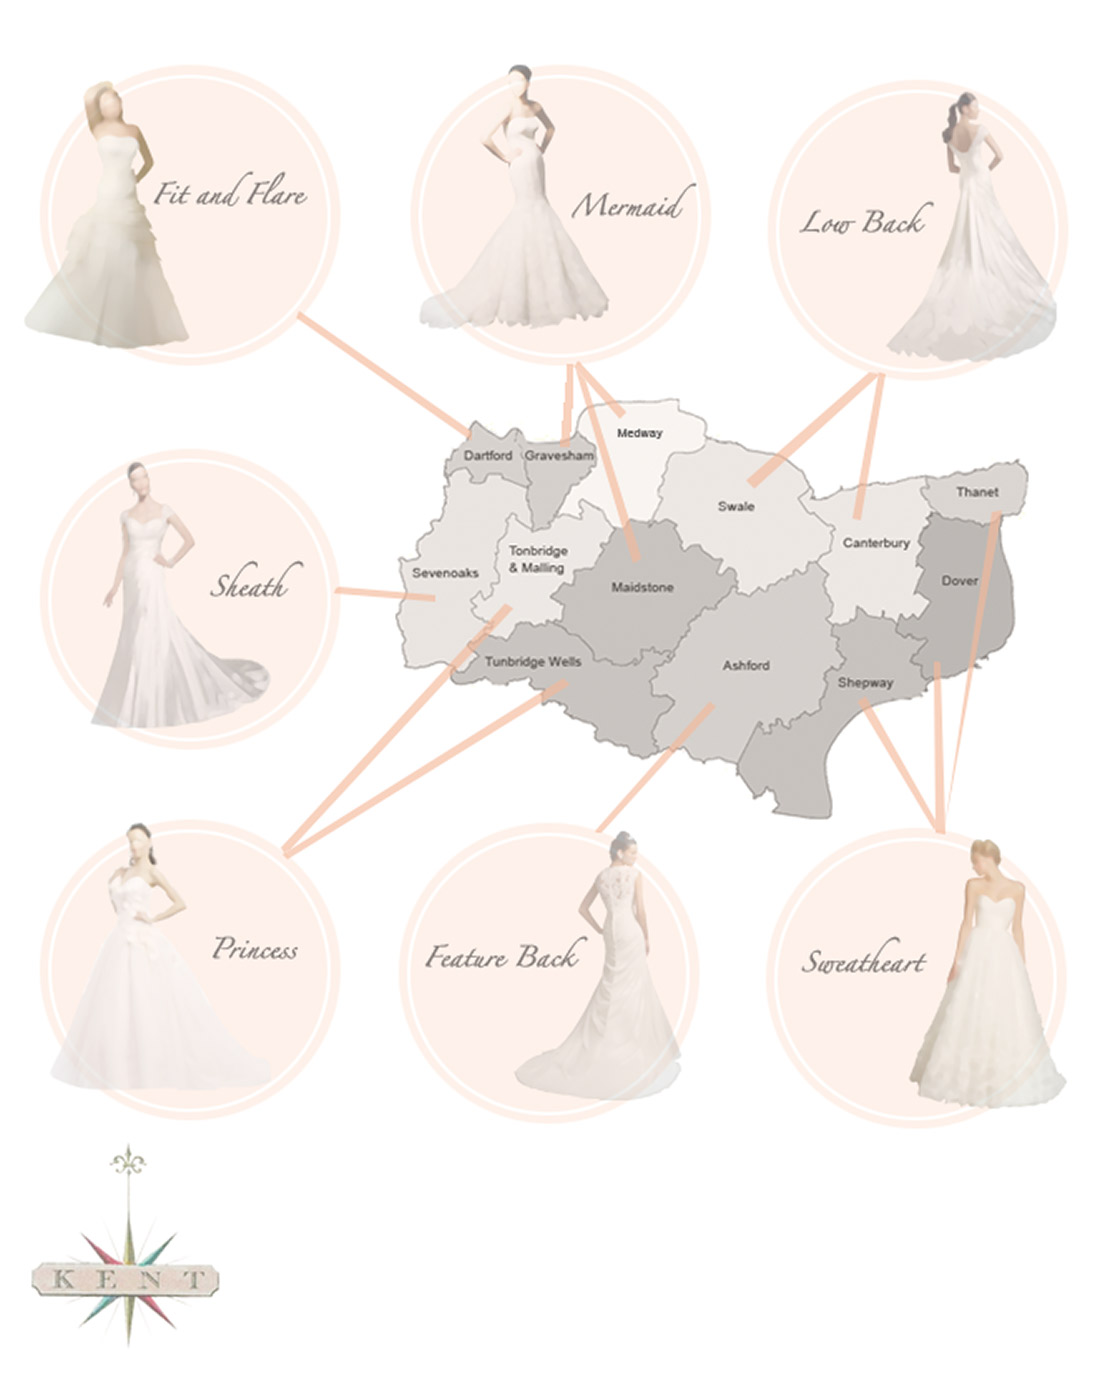 Chilham Bridal Blog | What Are The 7 Most Popular Wedding Dresses In Kent?